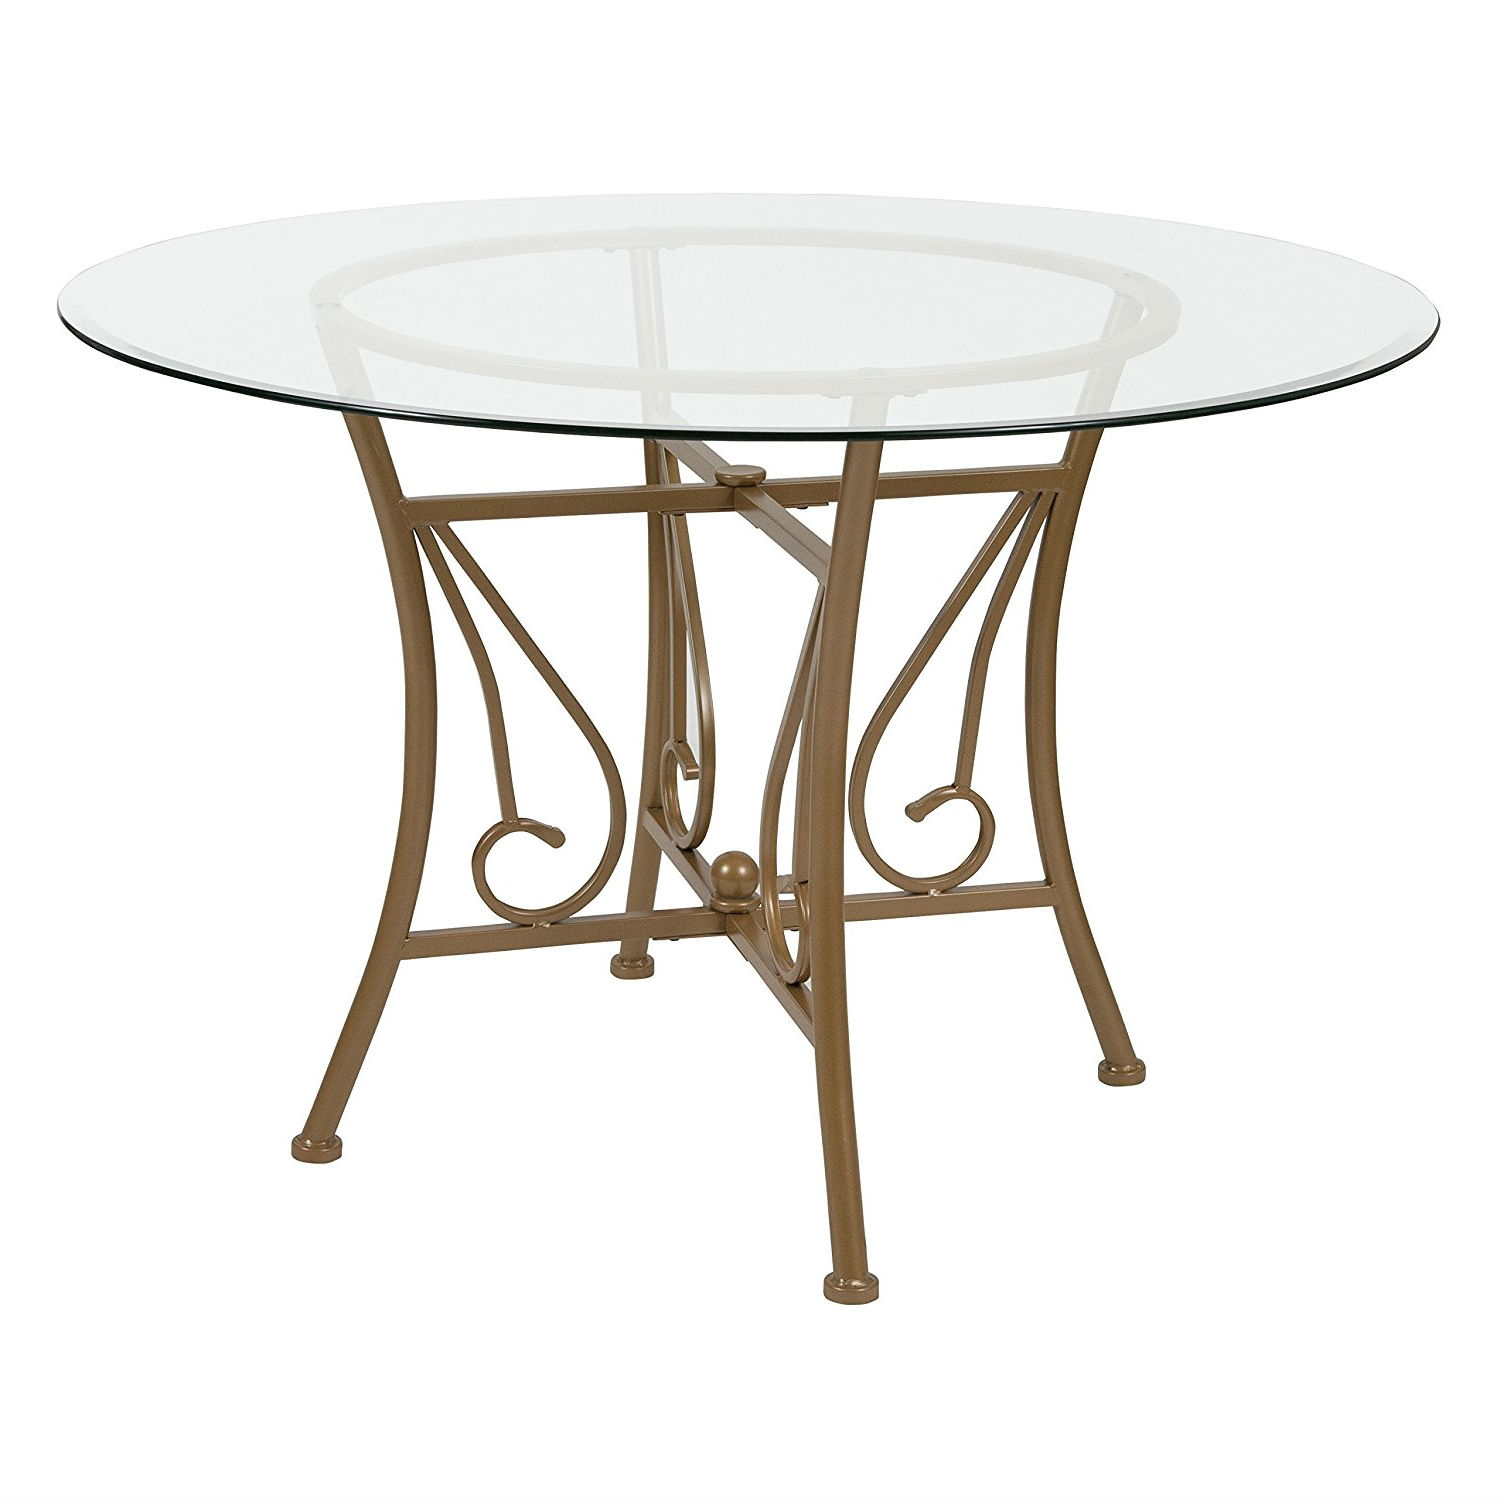 Contemporary 45 Inch Round Glass Top Dining Table With Matte Gold Metal Frame